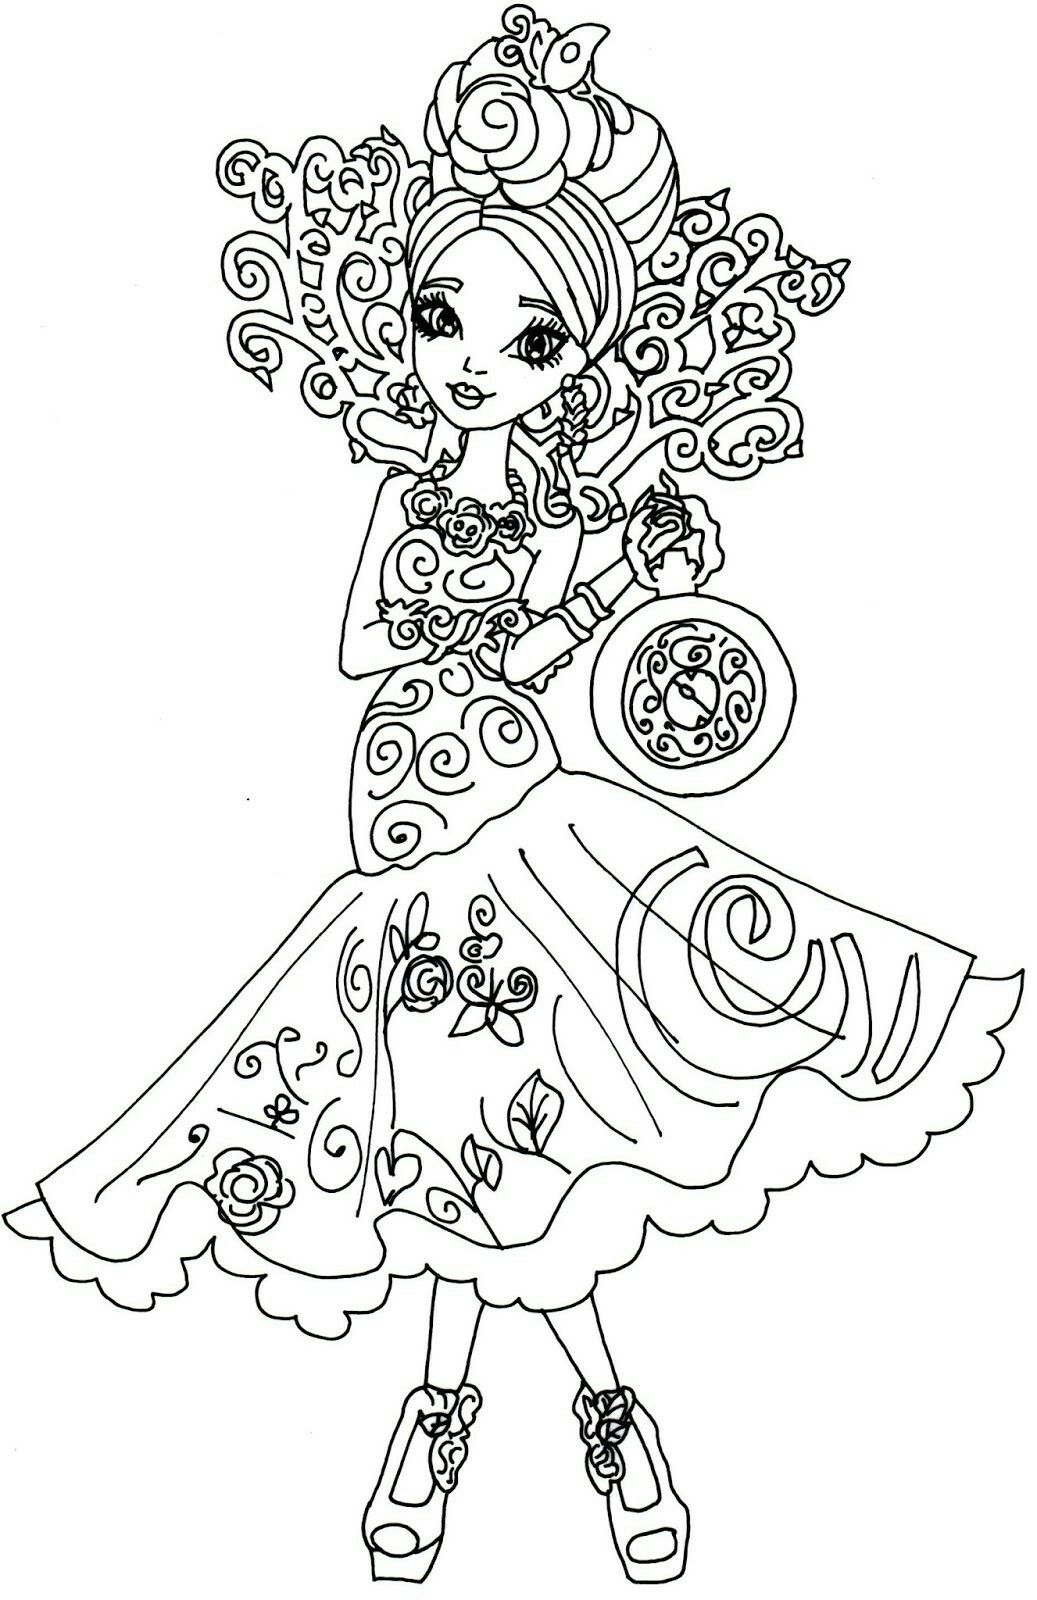 Free Printable Ever After High Coloring Pages: Lizzie Hearts and ...